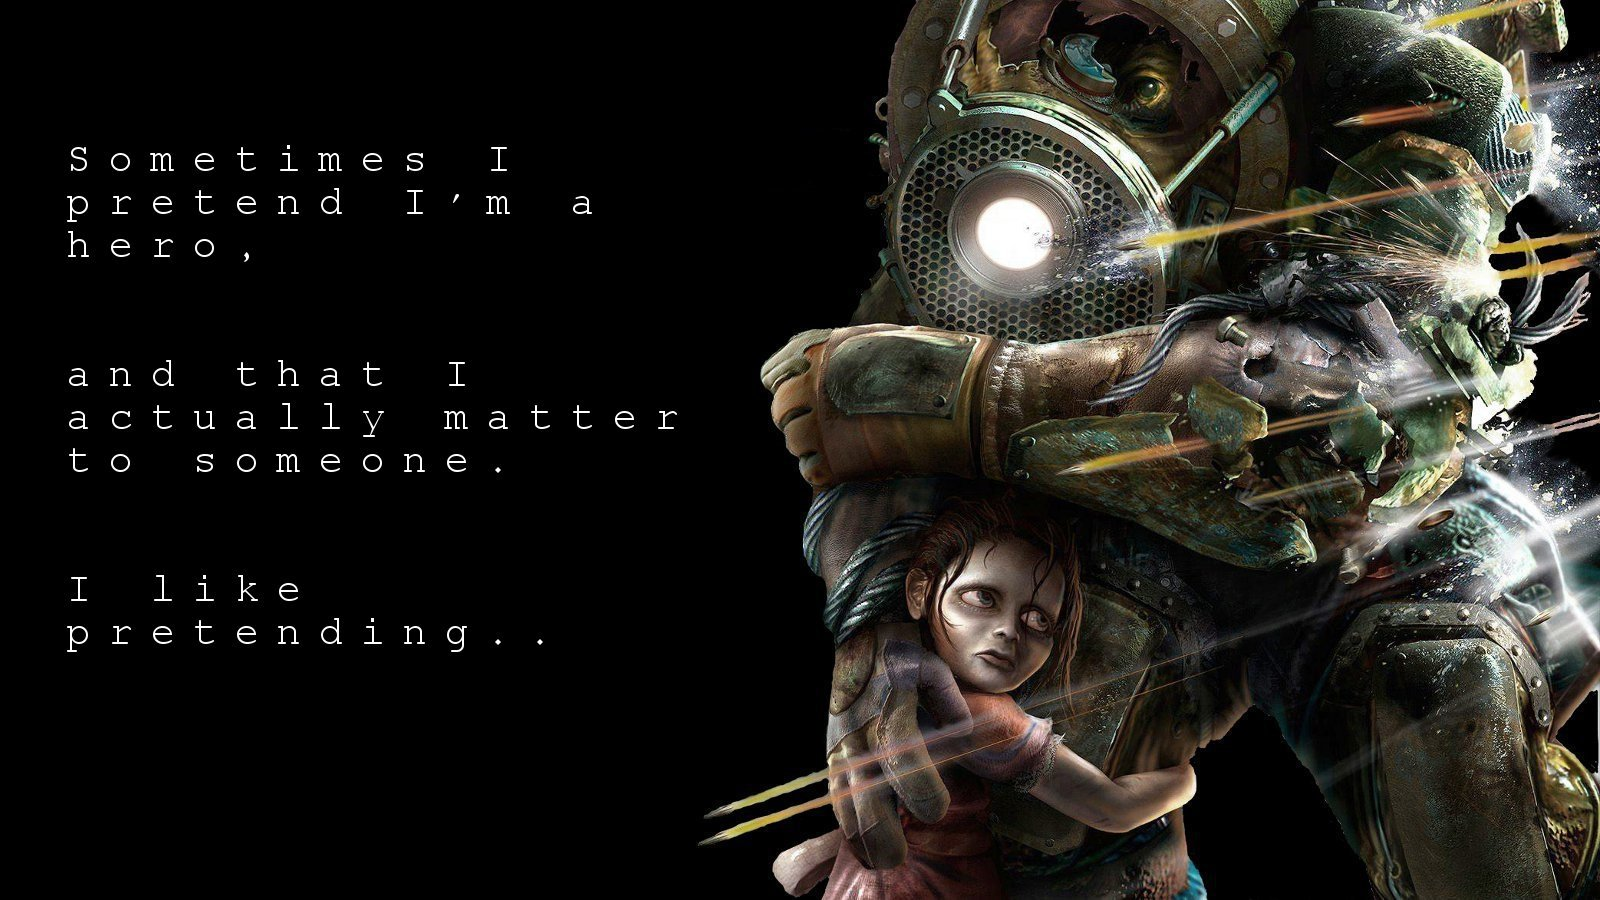 Bioshock Wallpaper and Background 1600x900 ID404676